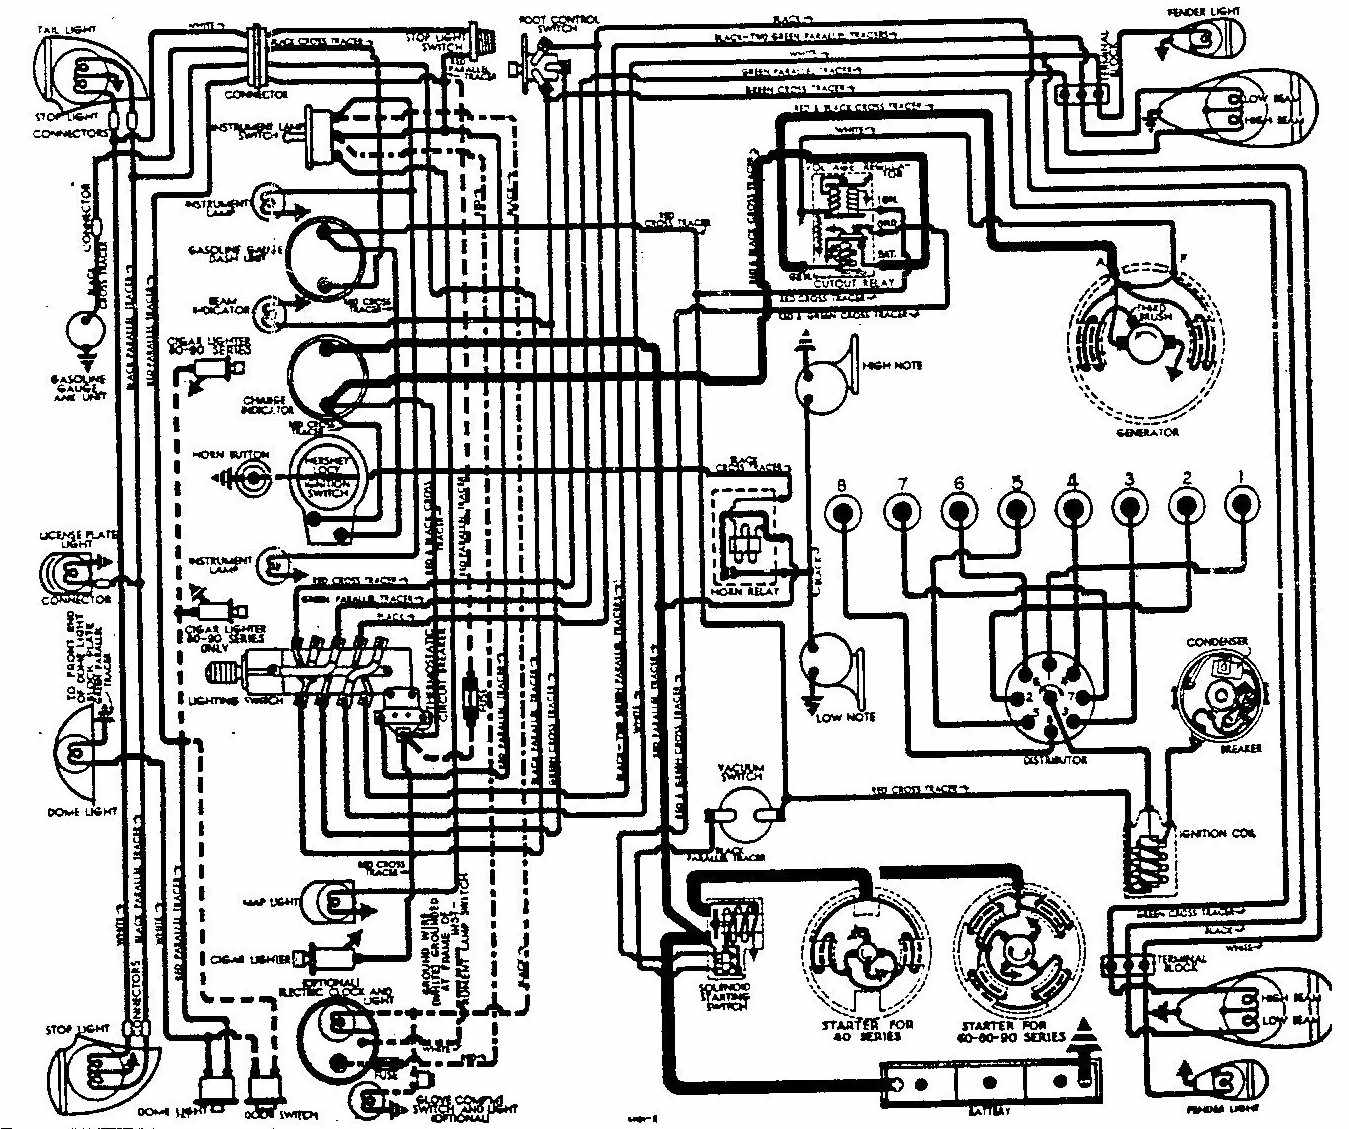 Buick+Roadmaster+1938+Electrical+Wiring+Diagram similiar ford tractor ignition switch wiring diagram keywords  at reclaimingppi.co